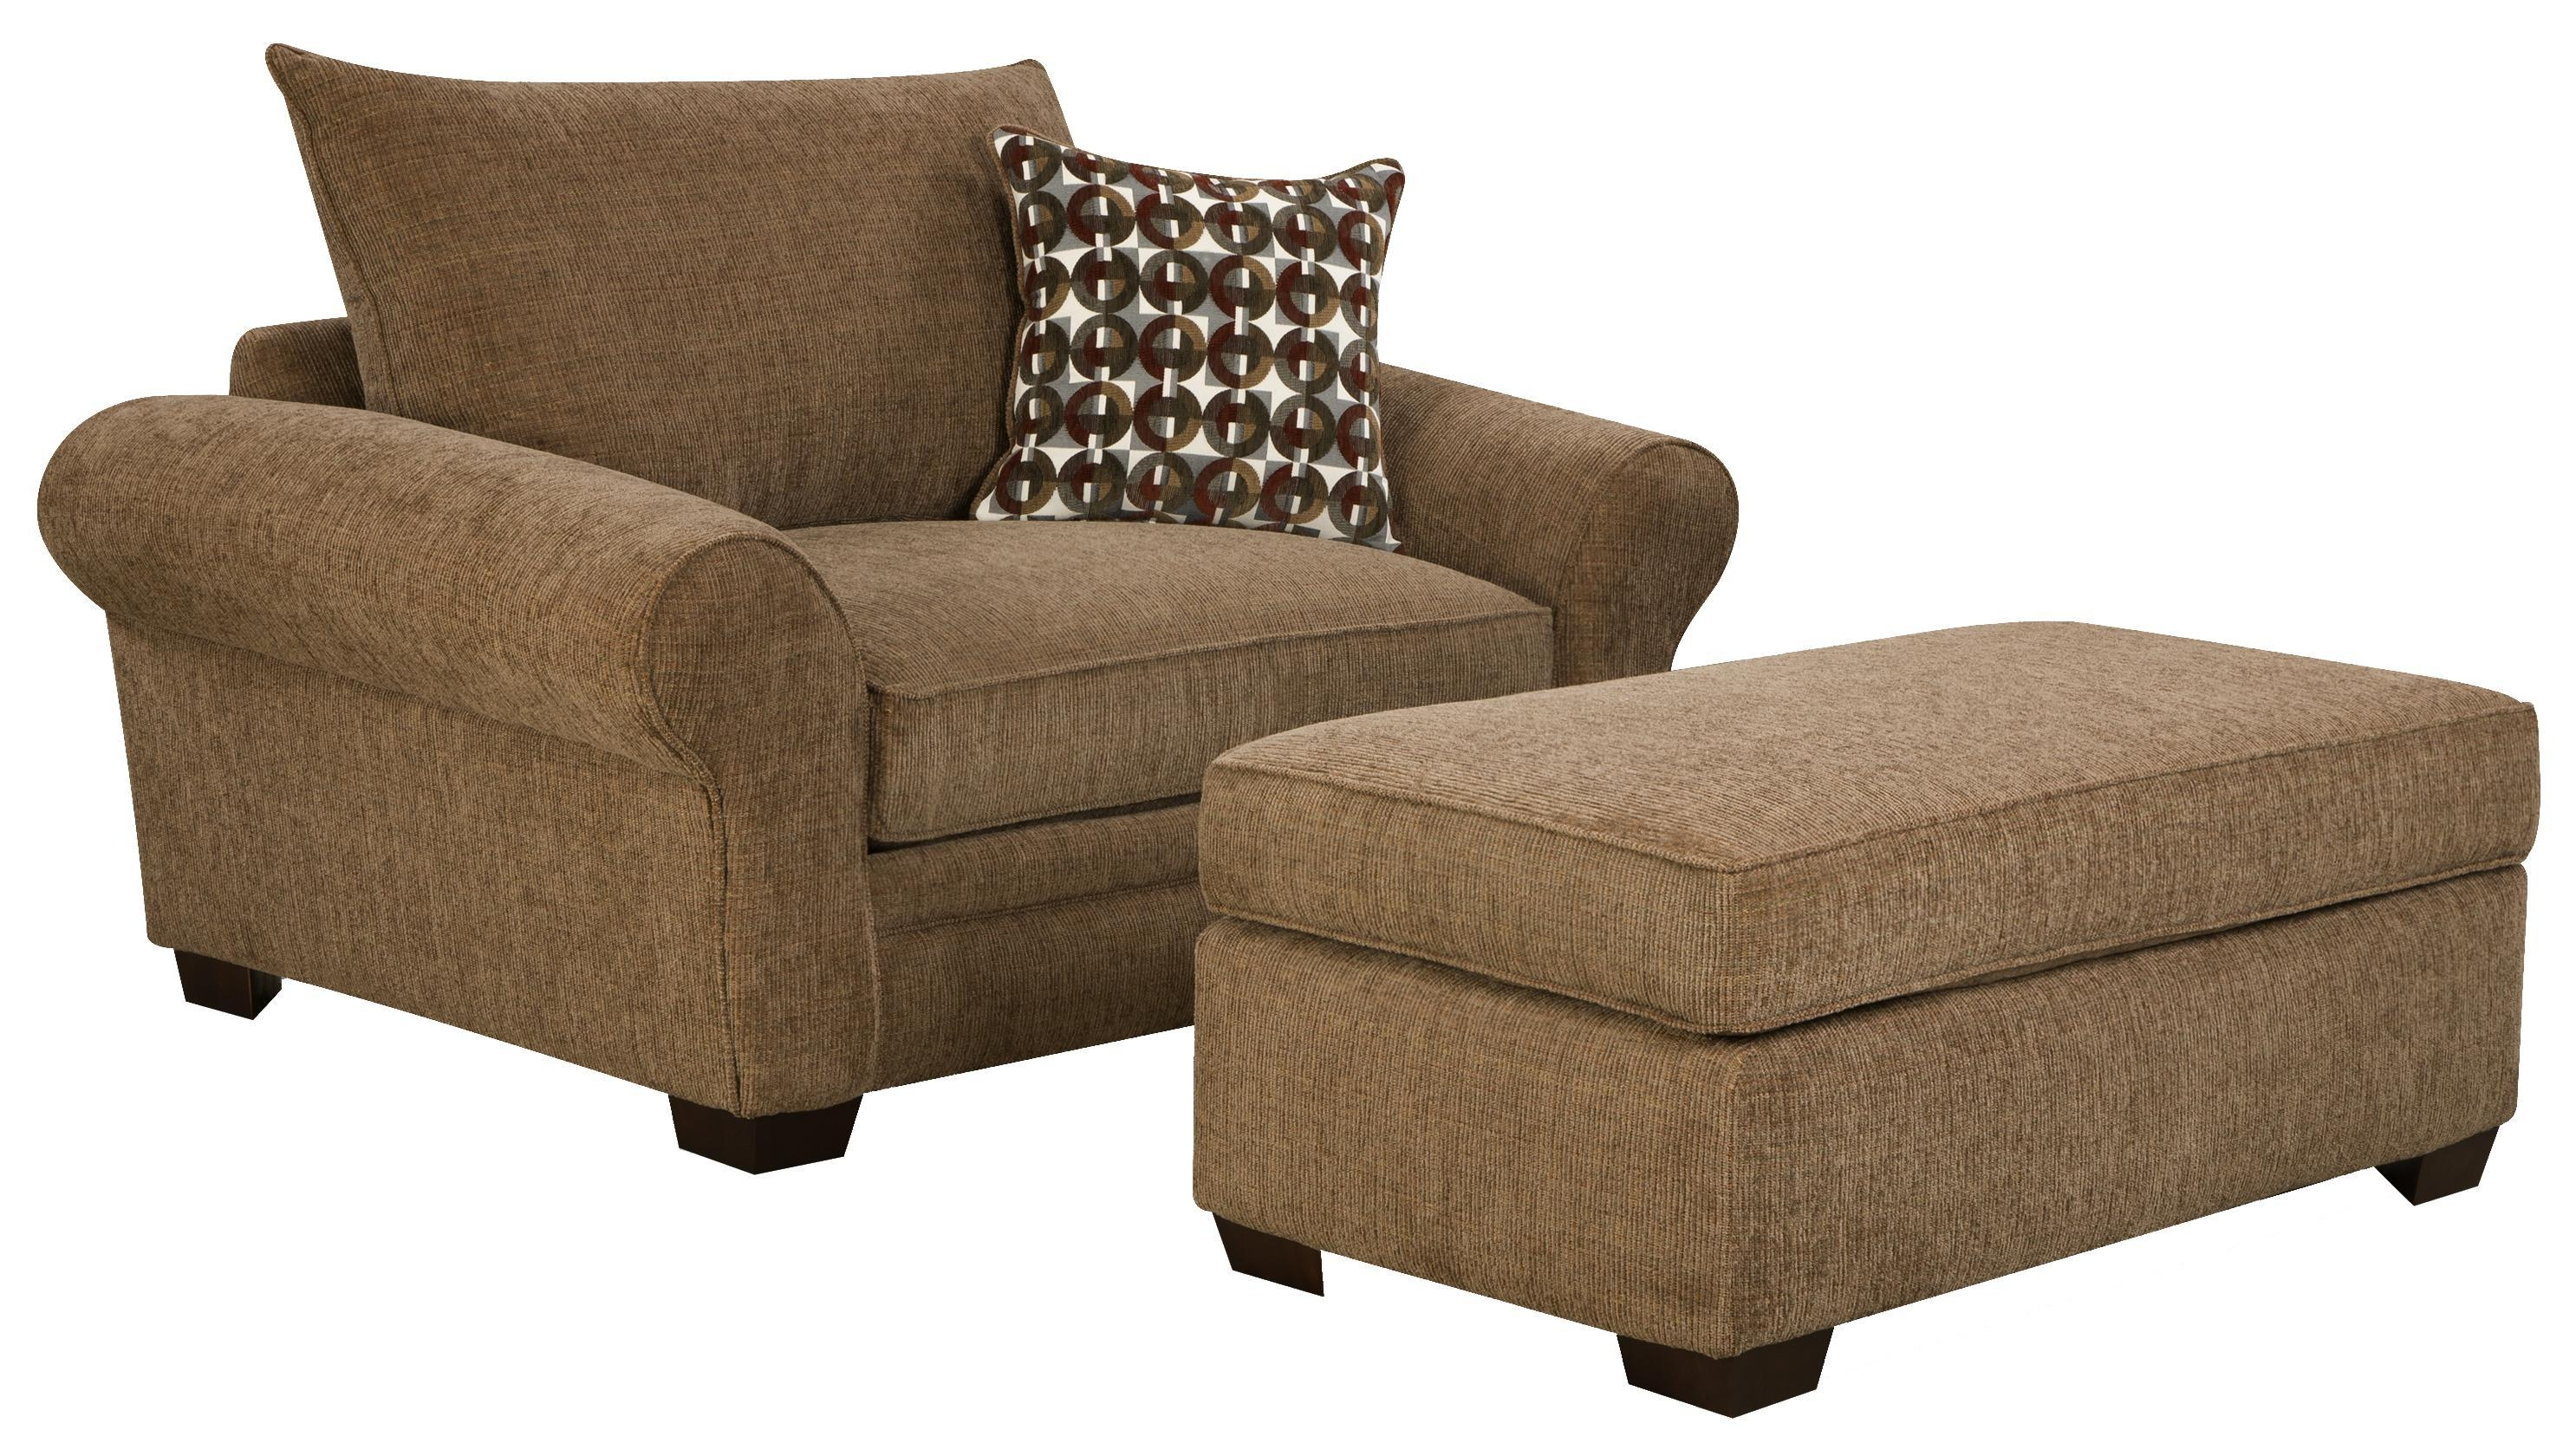 Extra Large Chair And A Half For Casual Styled Living Room Comfort In Casual Sofas And Chairs (Image 13 of 21)